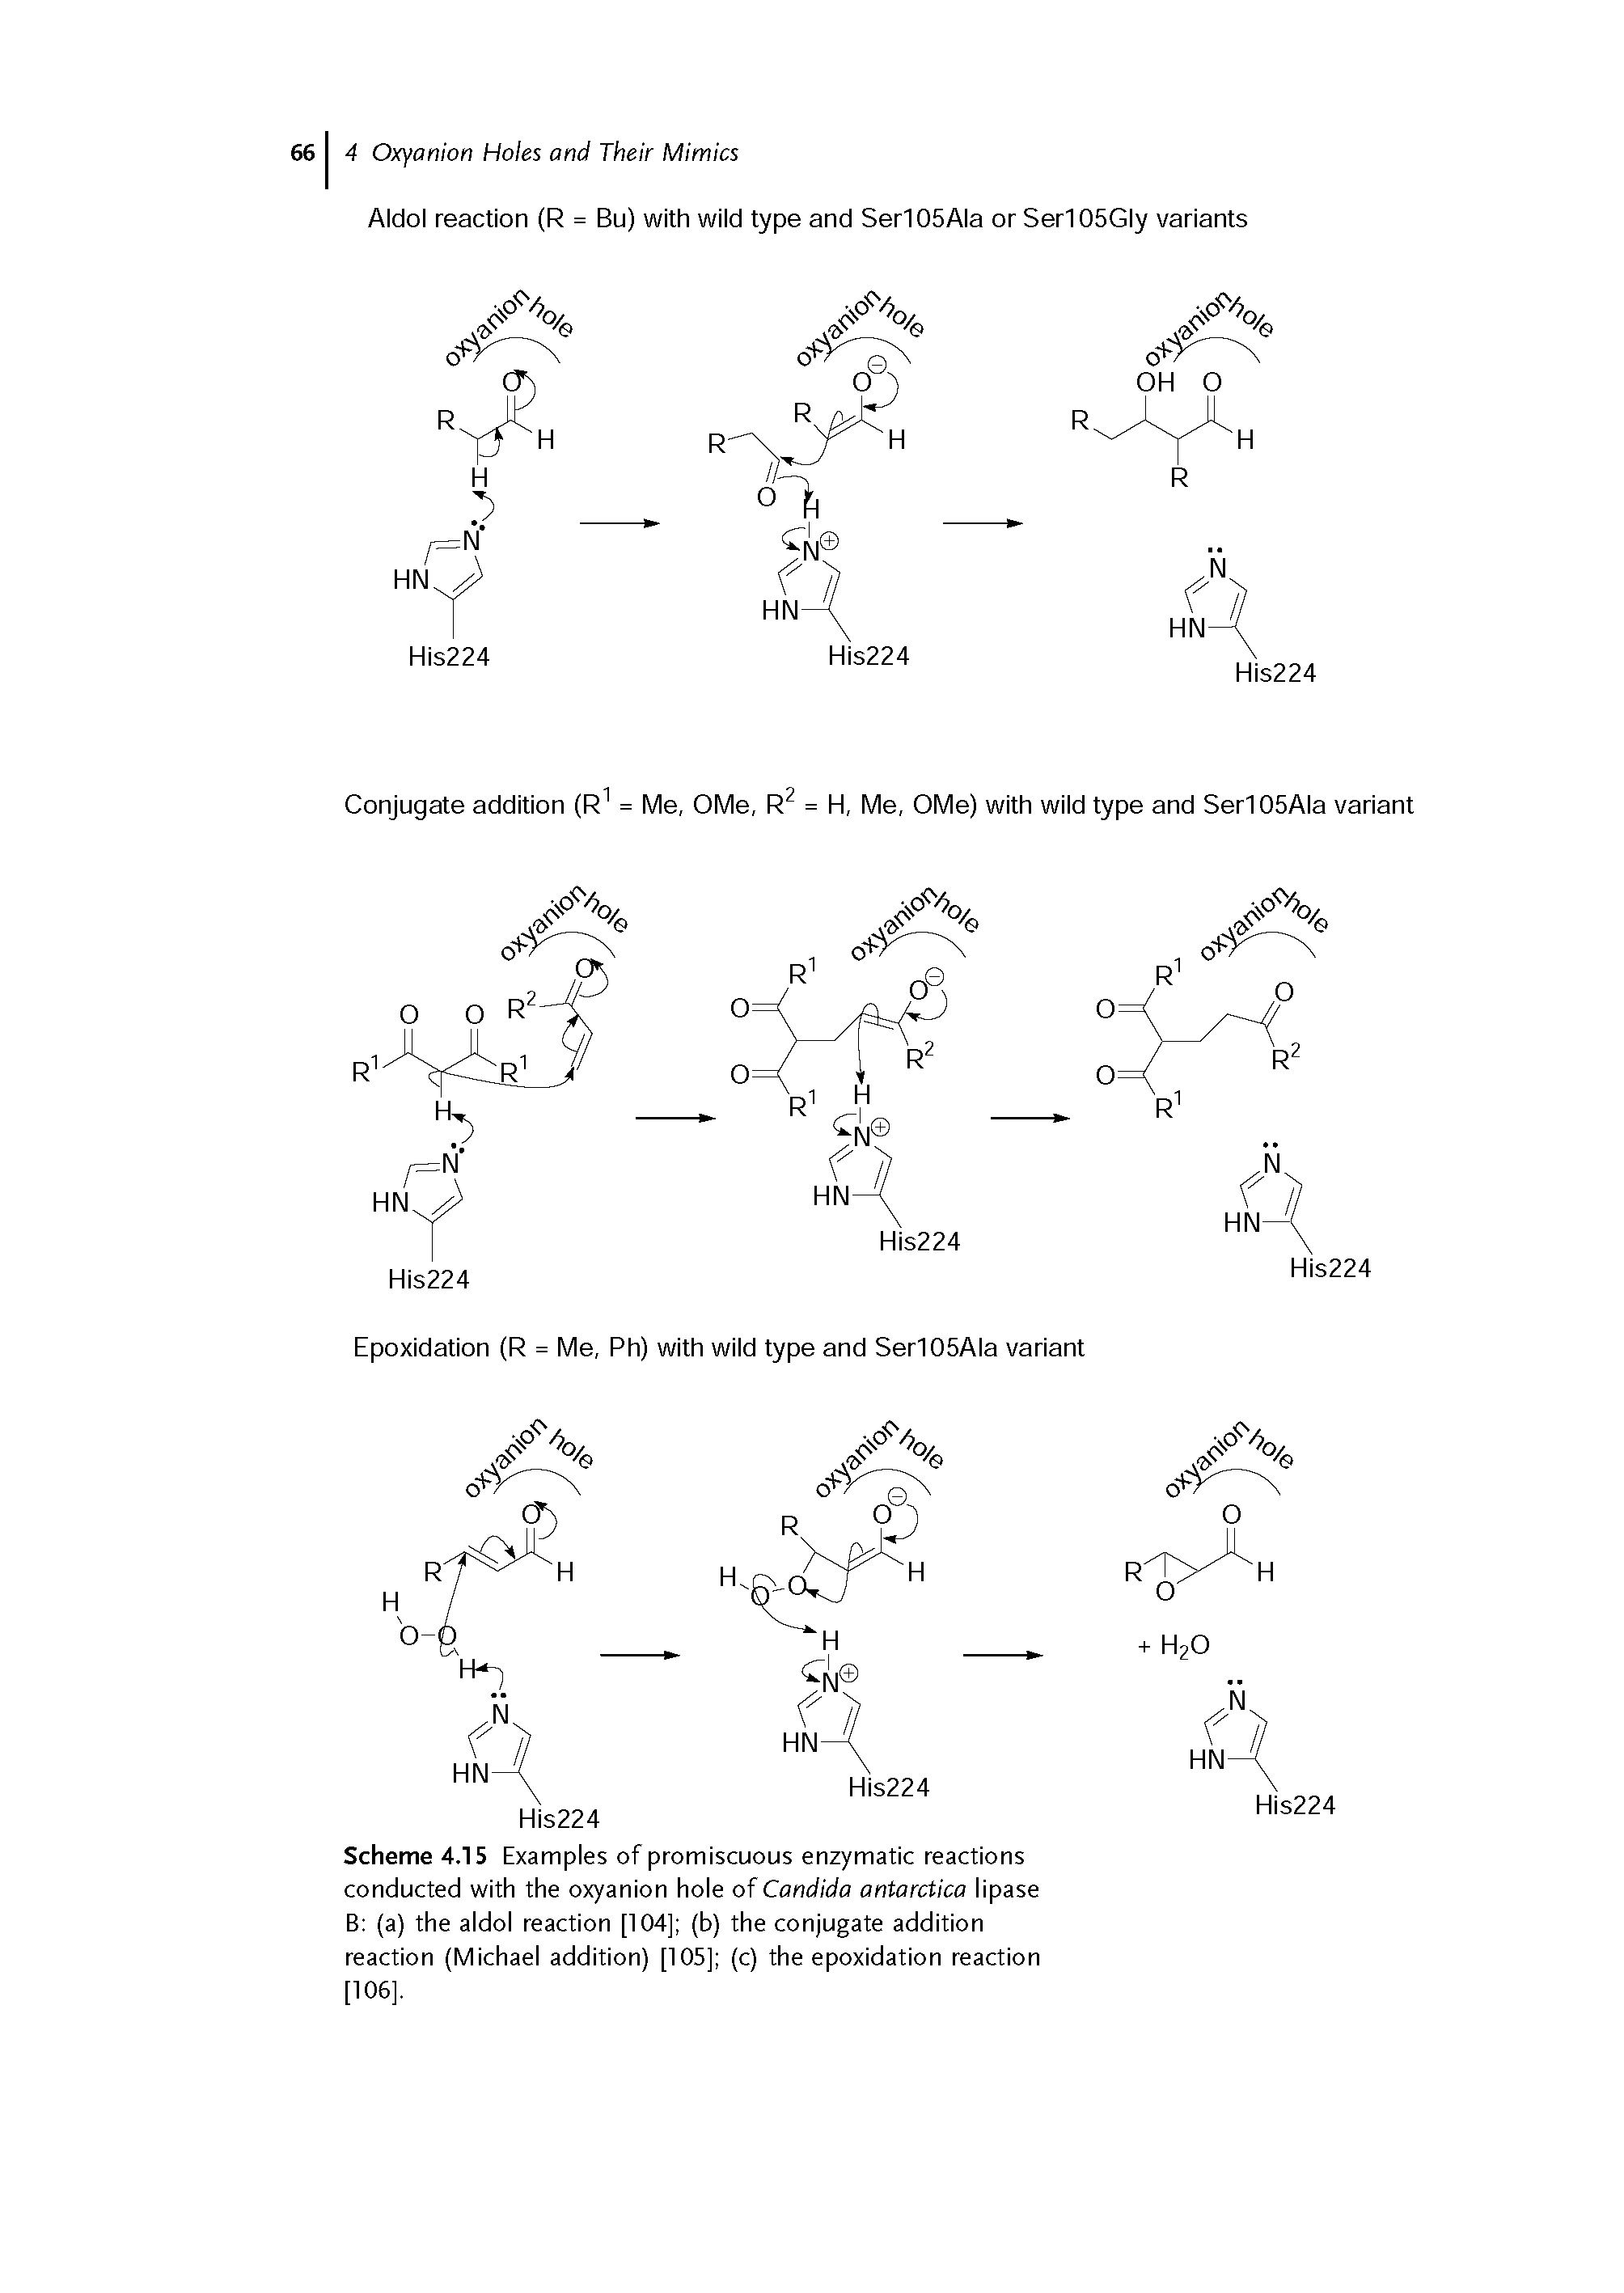 "Scheme 4.15 Examples of <a href=""/info/enzymatic_promiscuity"">promiscuous enzymatic</a> reactions conducted with the <a href=""/info/oxyanion_hole"">oxyanion hole</a> of <a href=""/info/candida_antarctica_lipase_a"">Candida antarctica lipase</a> B (a) the <a href=""/info/aldol_reactions"">aldol reaction</a> [104] (b) the <a href=""/info/addition_conjugate_and_sn2_reactions"">conjugate addition reaction</a> (<a href=""/info/michael_addition"">Michael addition</a>) [105] (c) the epoxidation reaction [106],"